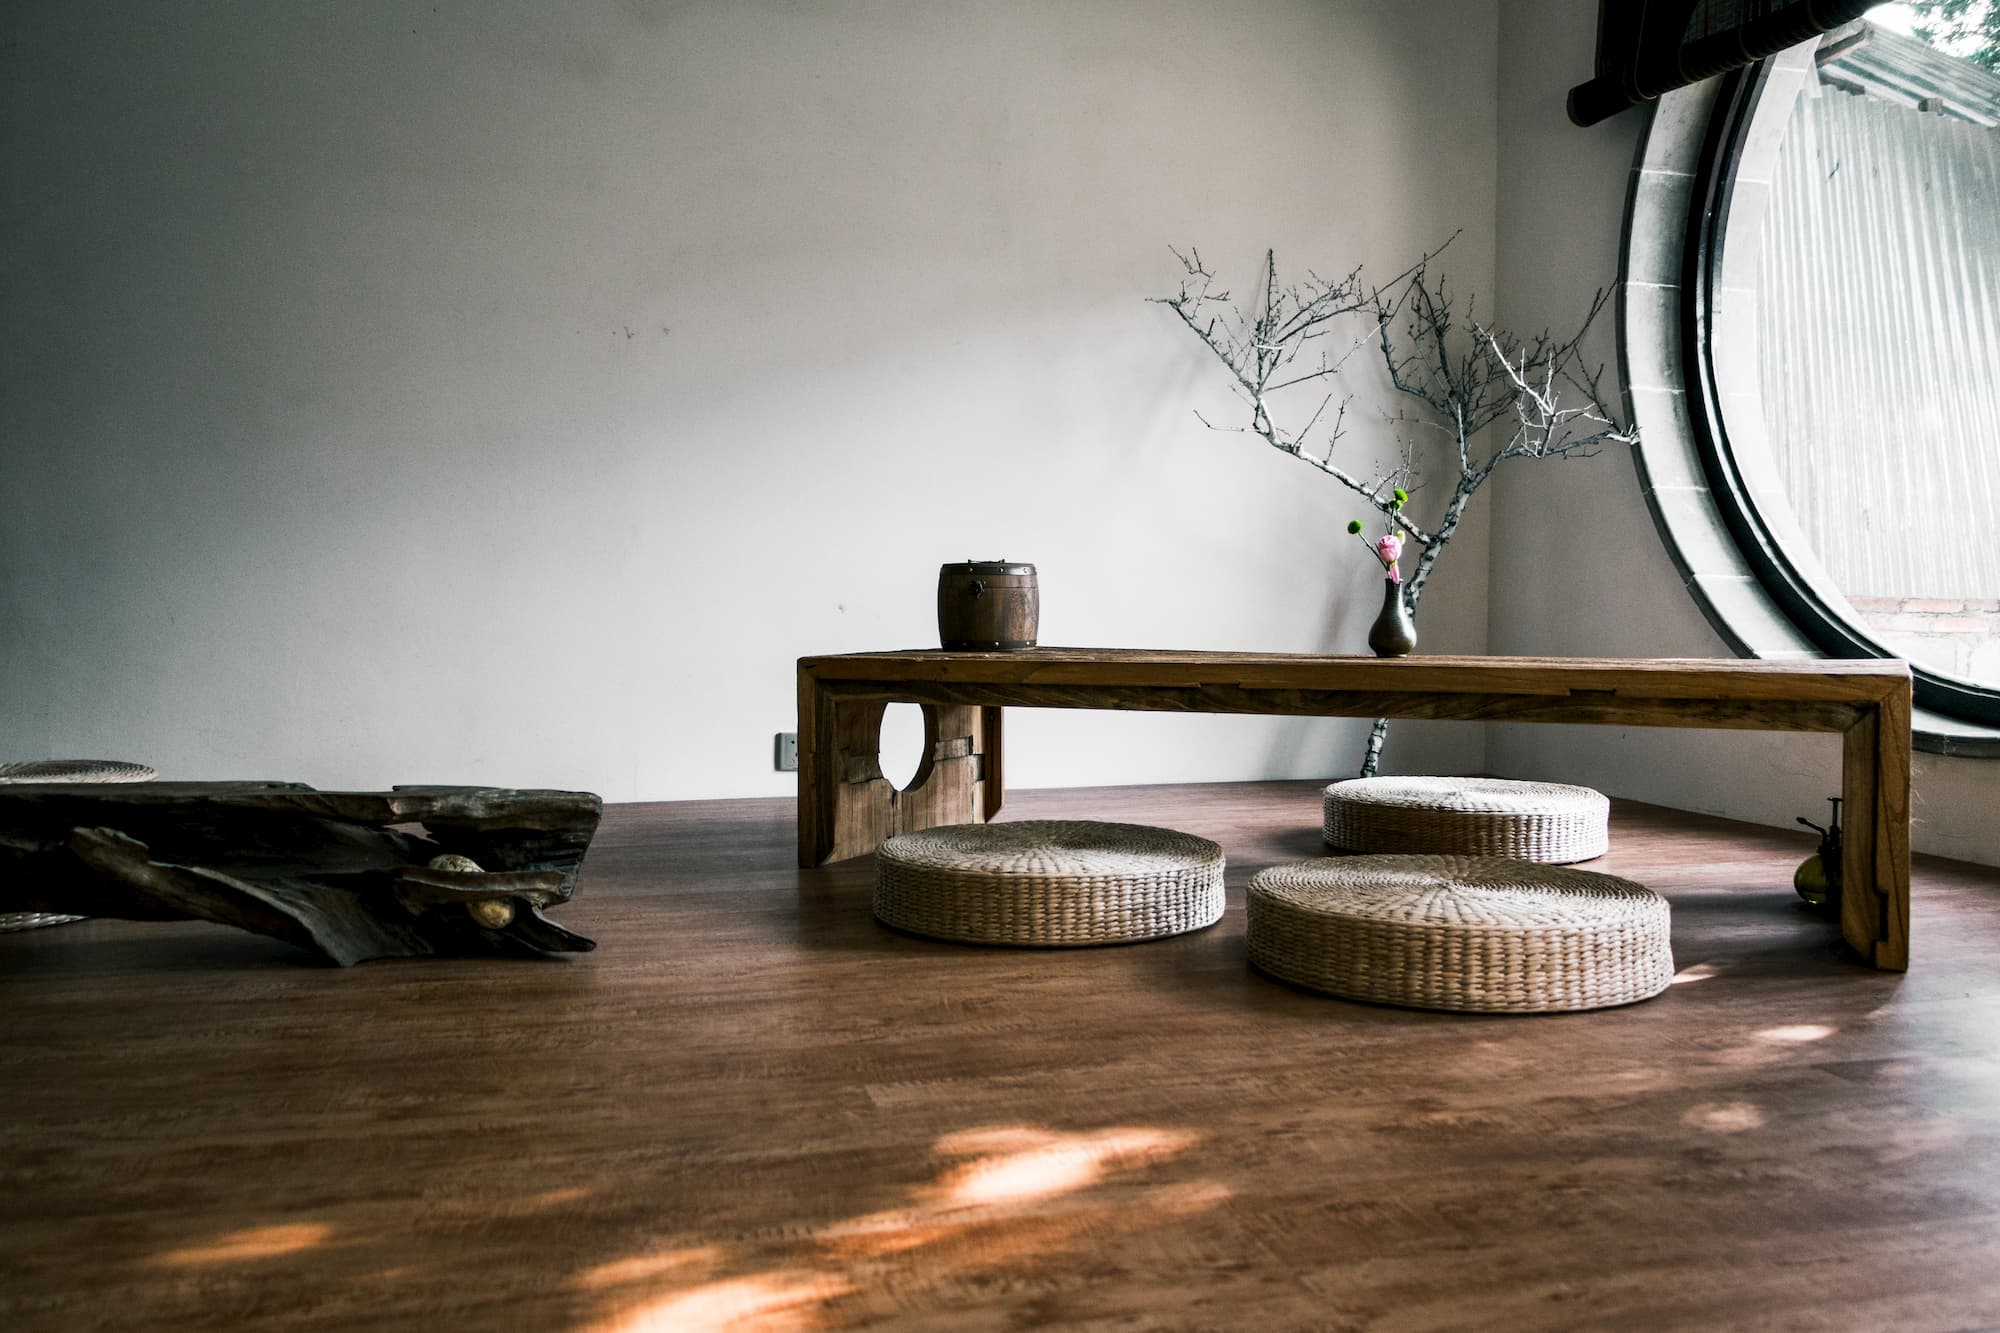 A simple wooden table and three round wicker cushions rest on a walnut floor with a tree branch resting in the corner as decoration.